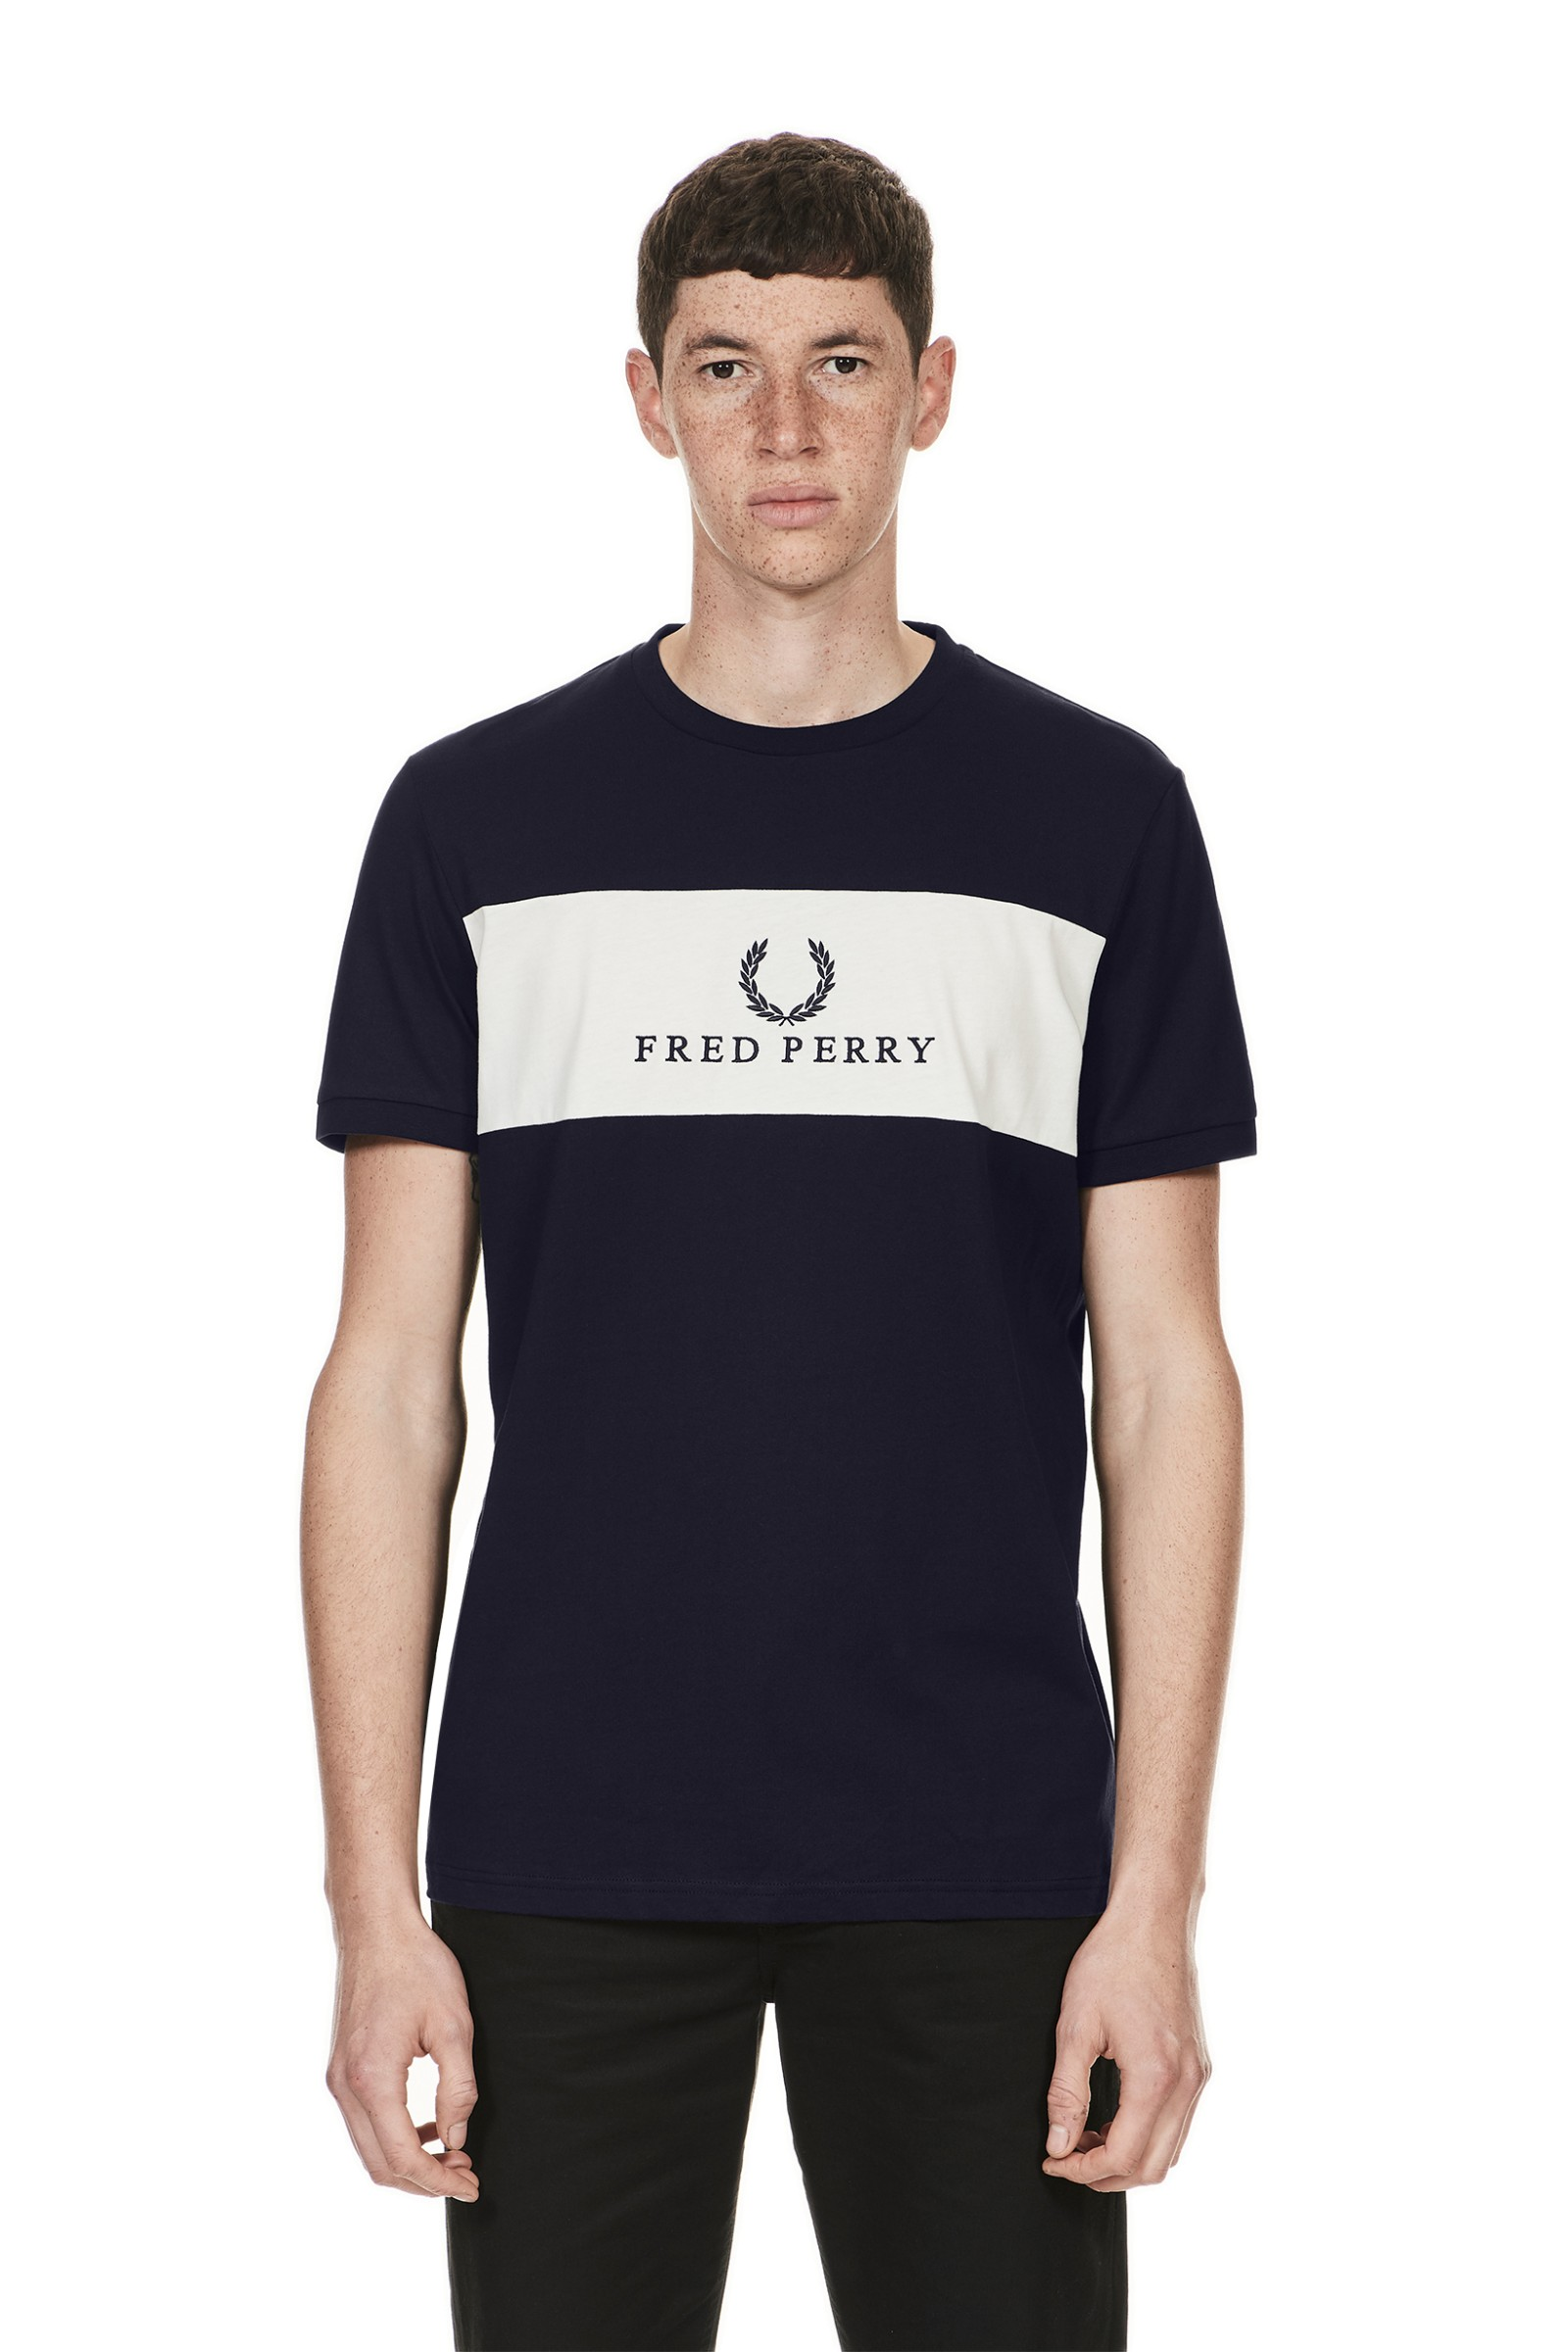 Fred Perry Sports Authentic Embroidered Panel T-Shirt